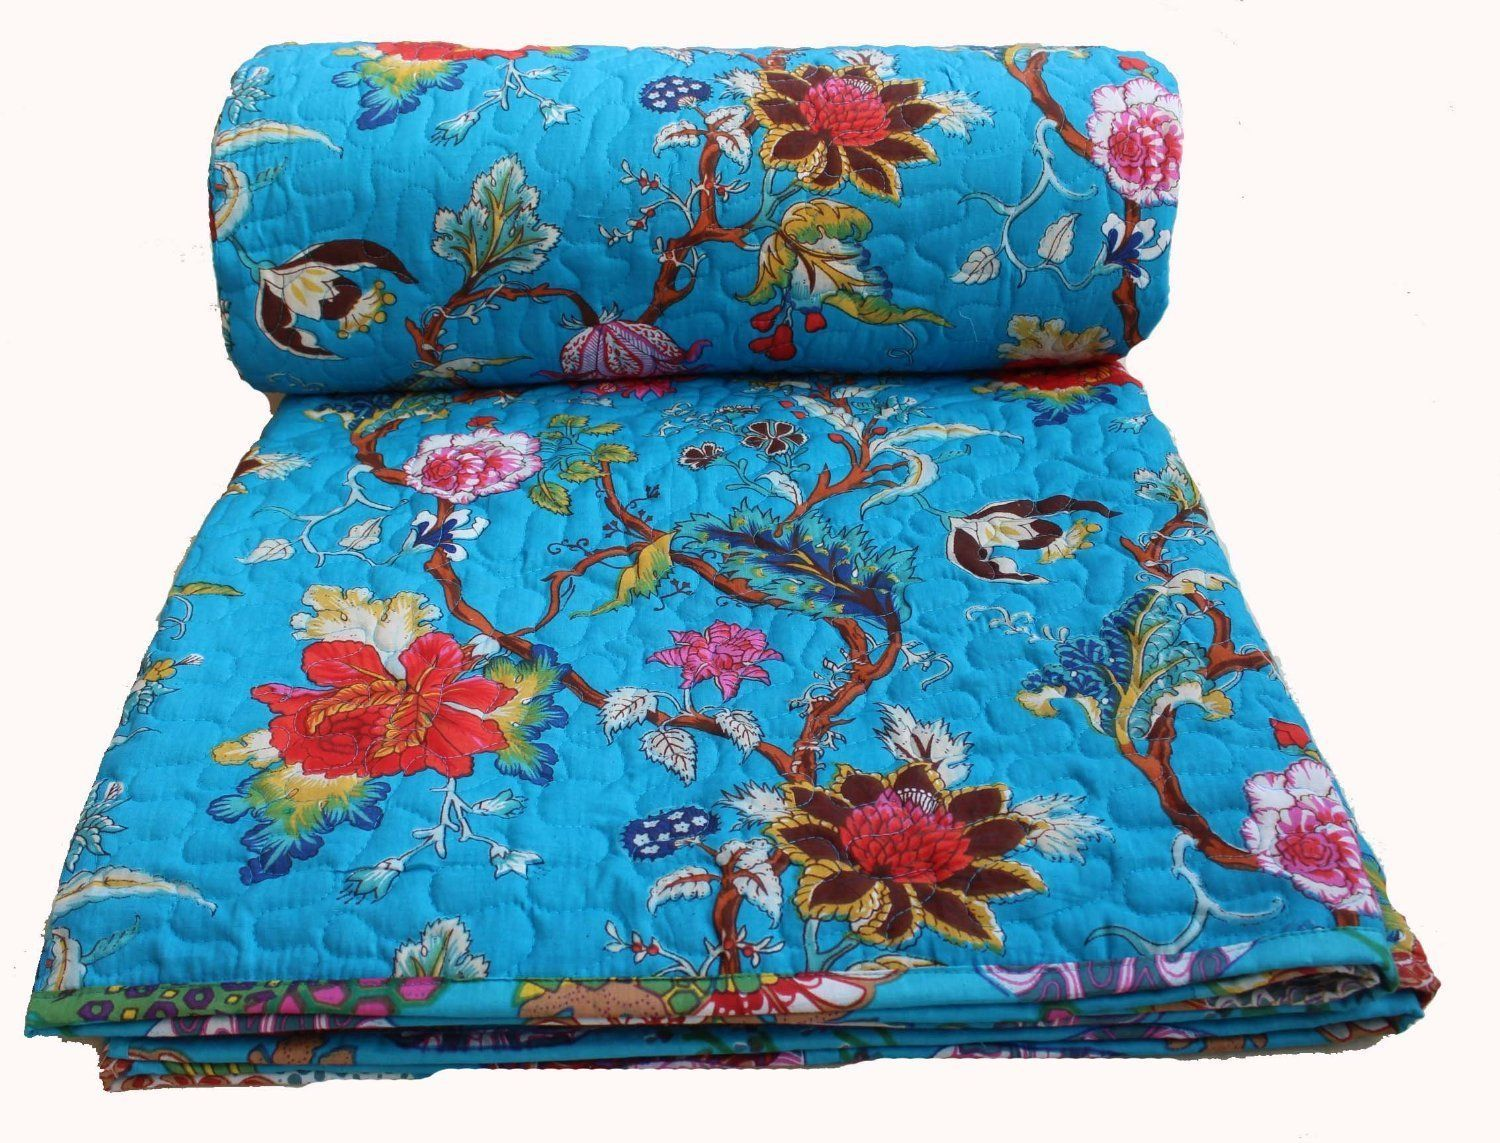 Bed cover in bedding ebay - Details About Winter Quilts Floral Print Comforter Floral Cotton Blanket Turquoise Bedding Bed Coversturquoise